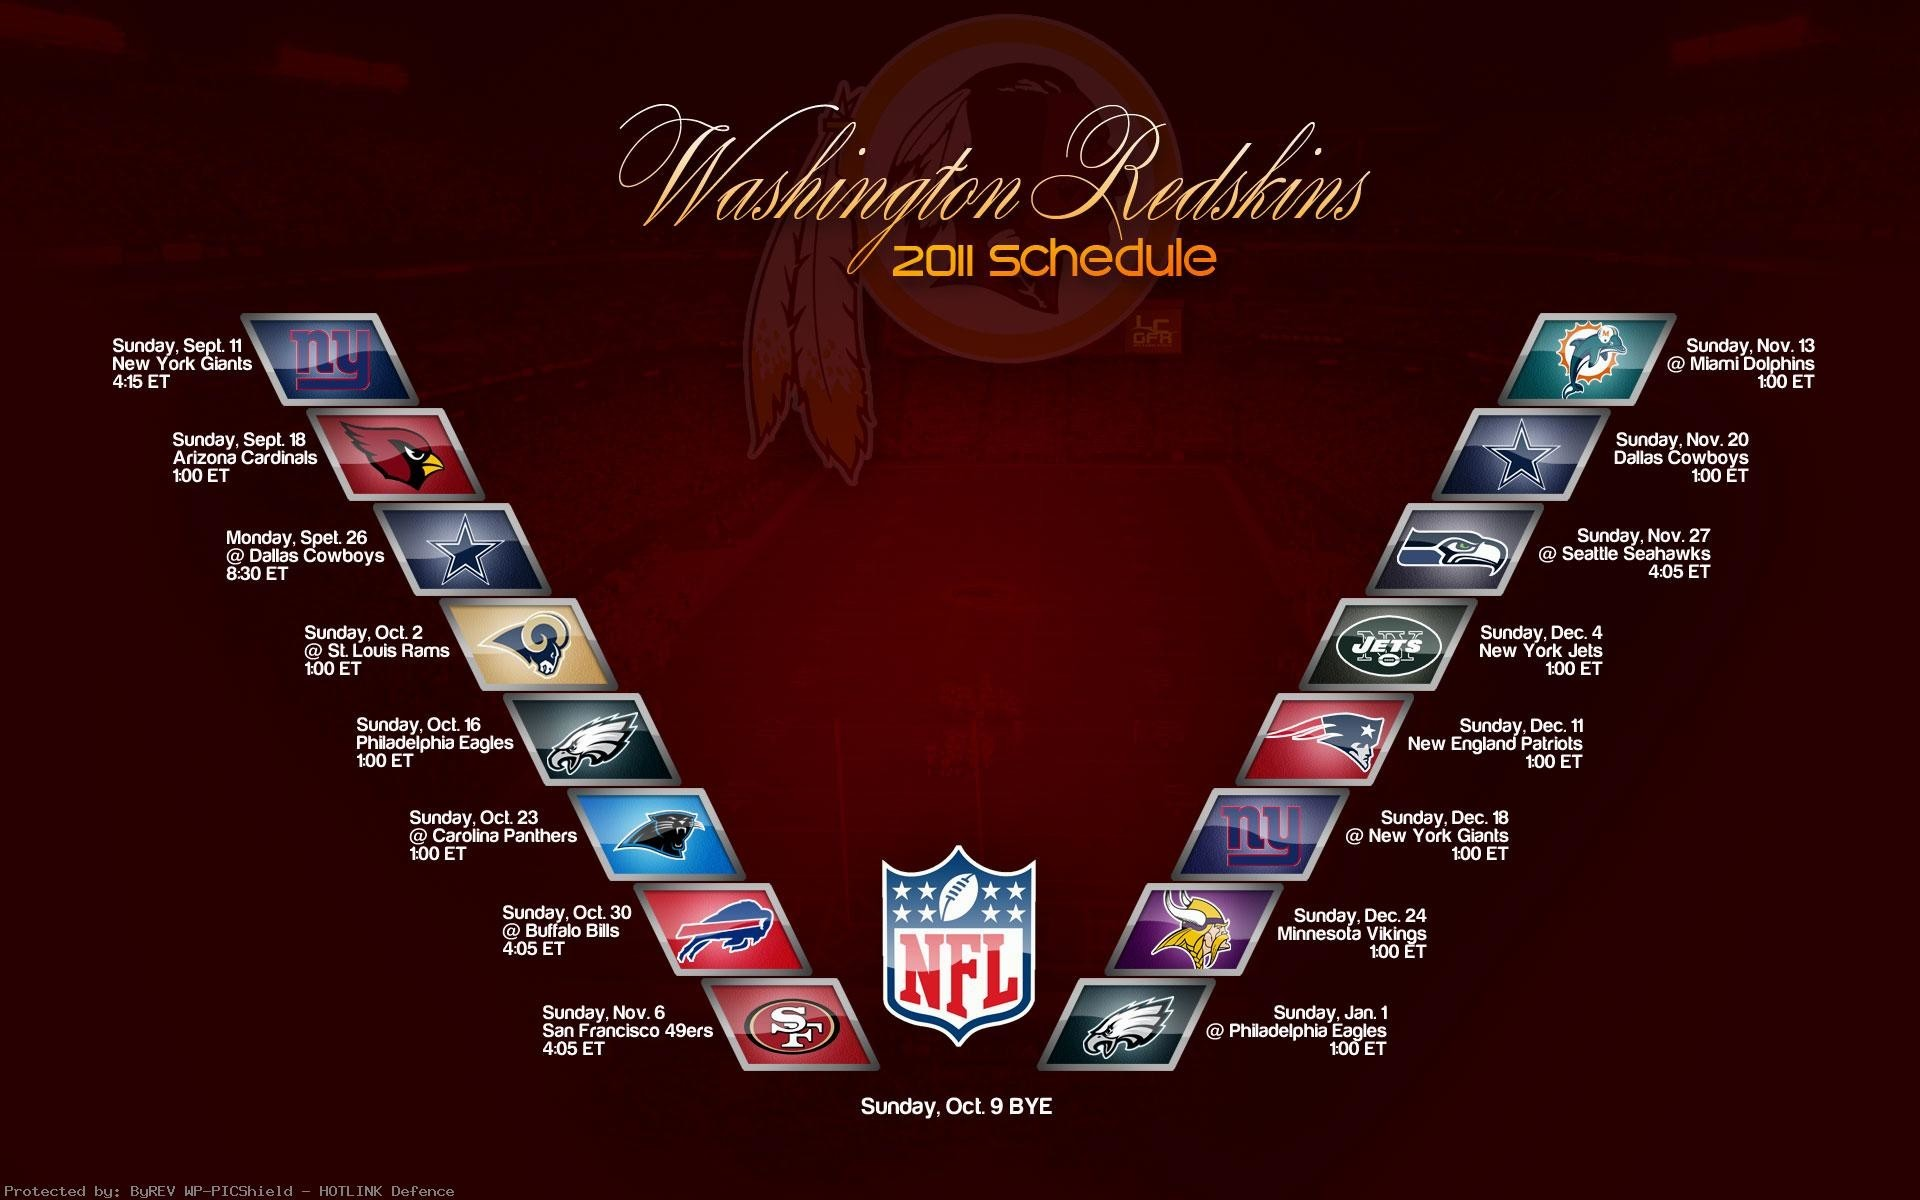 1920x1200  Washington-Redskins-Schedule-afari-wallpaper-wp60013797